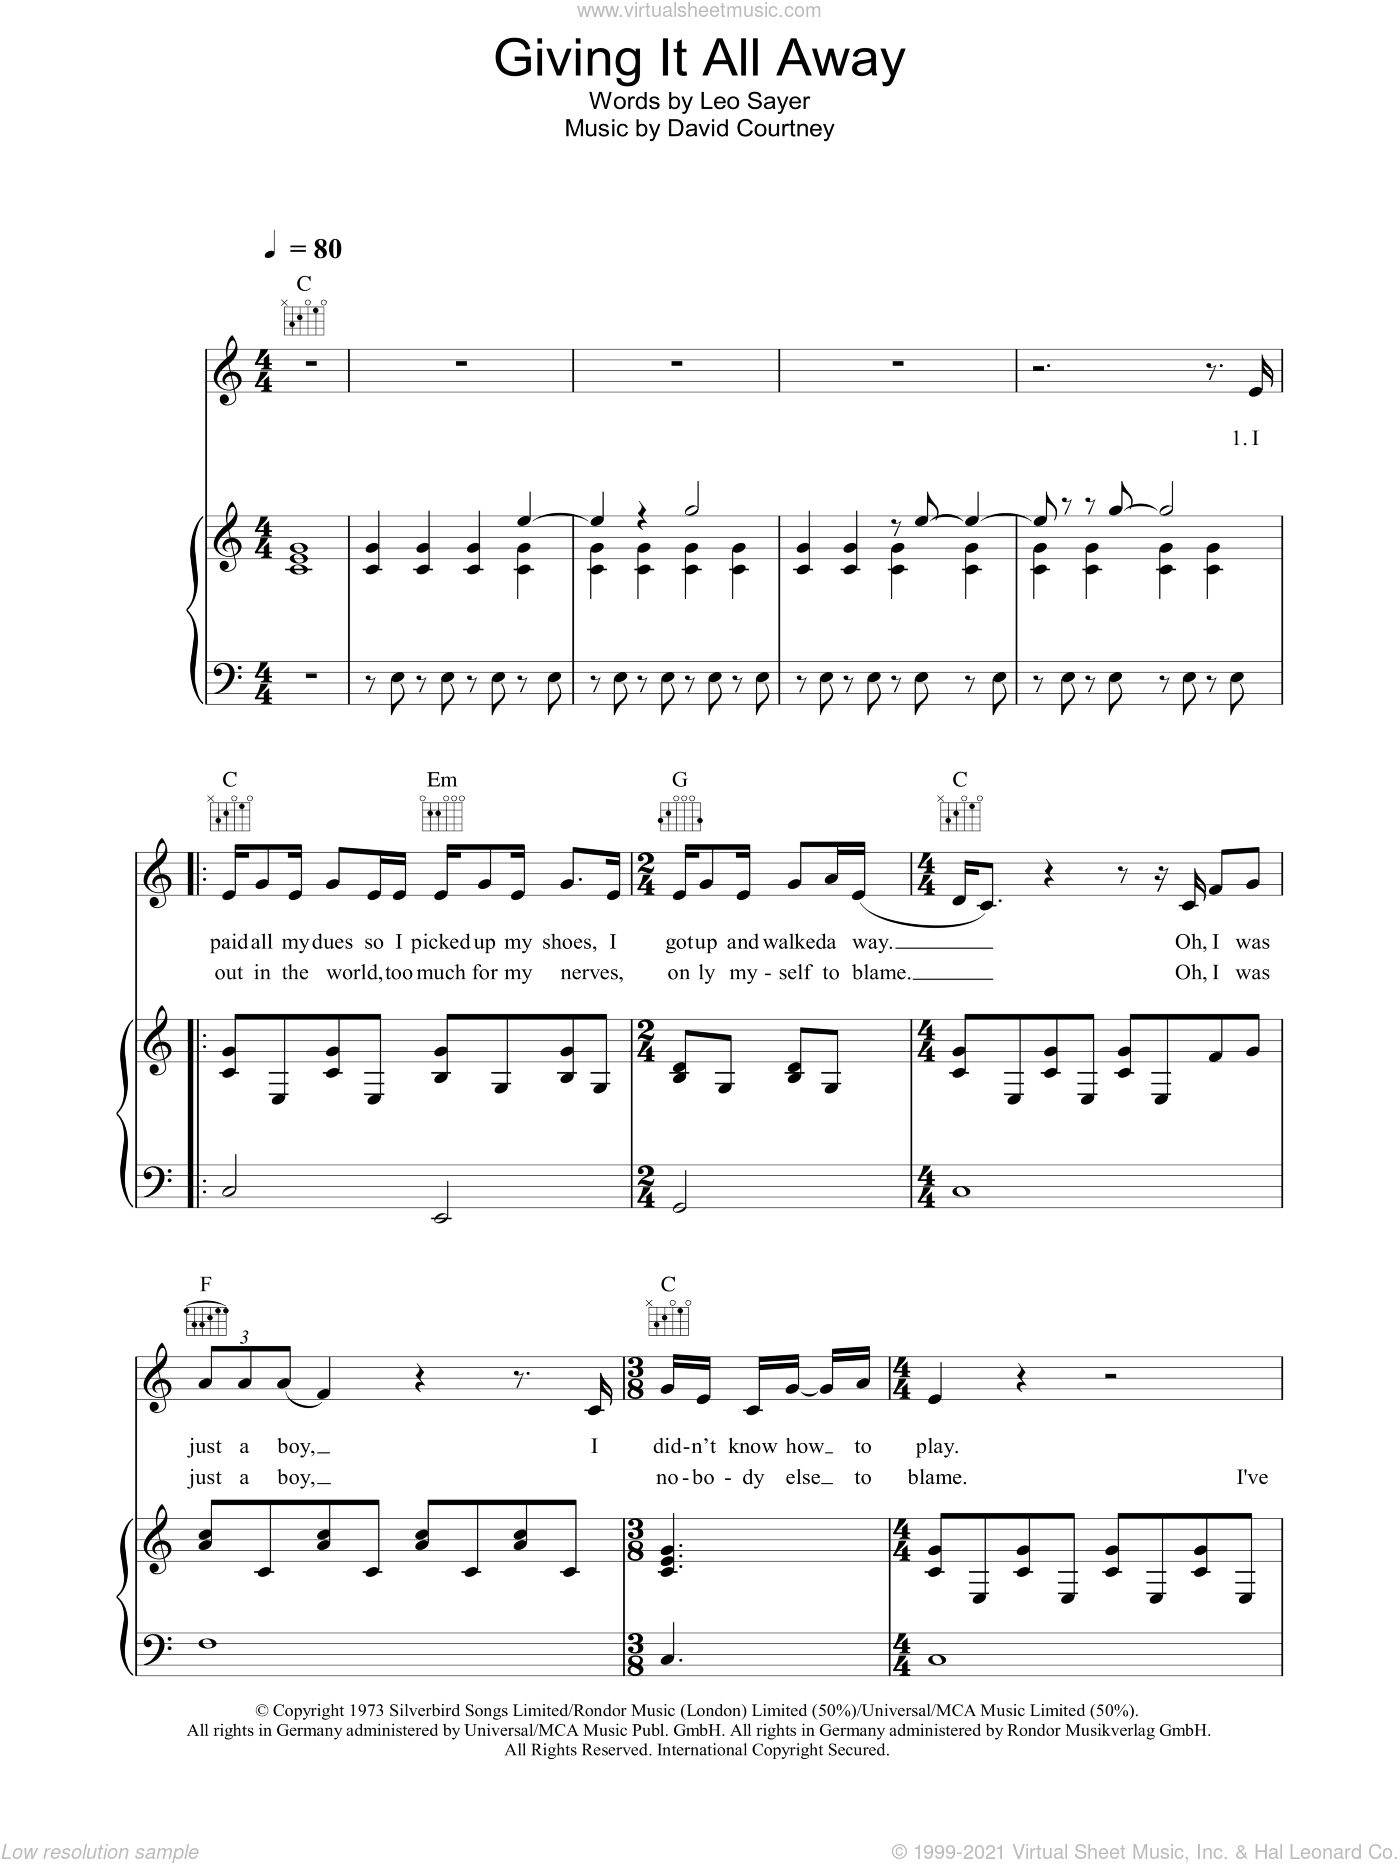 Giving It All Away sheet music for voice, piano or guitar by David Courtney